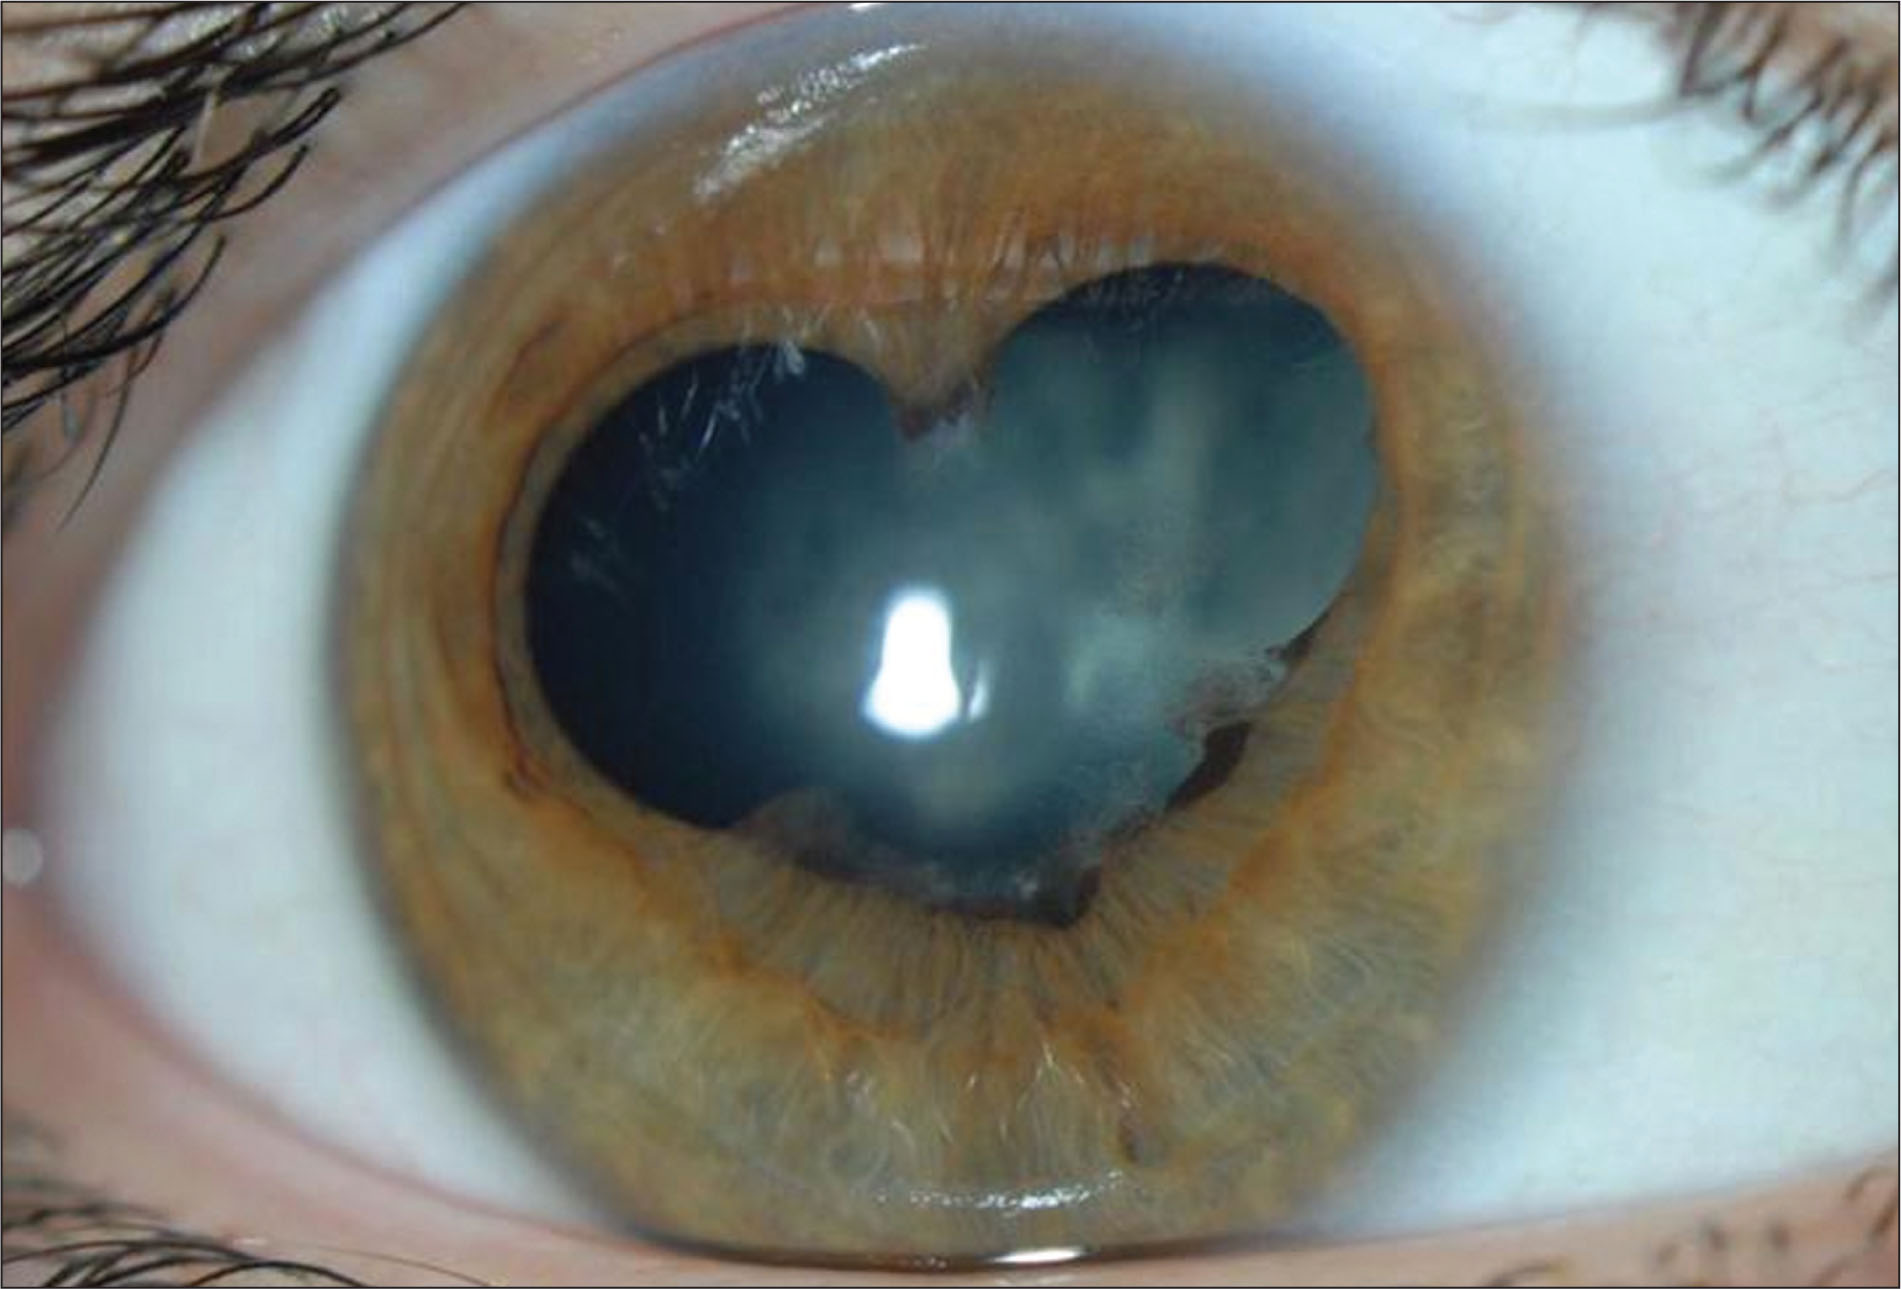 Heart-Shaped Pupil Secondary to Posterior Synechiae in a 13-Year-Old Girl with Uveitis Associated with HLA-B27. This Patient's Birthday Is February 14, 1994.